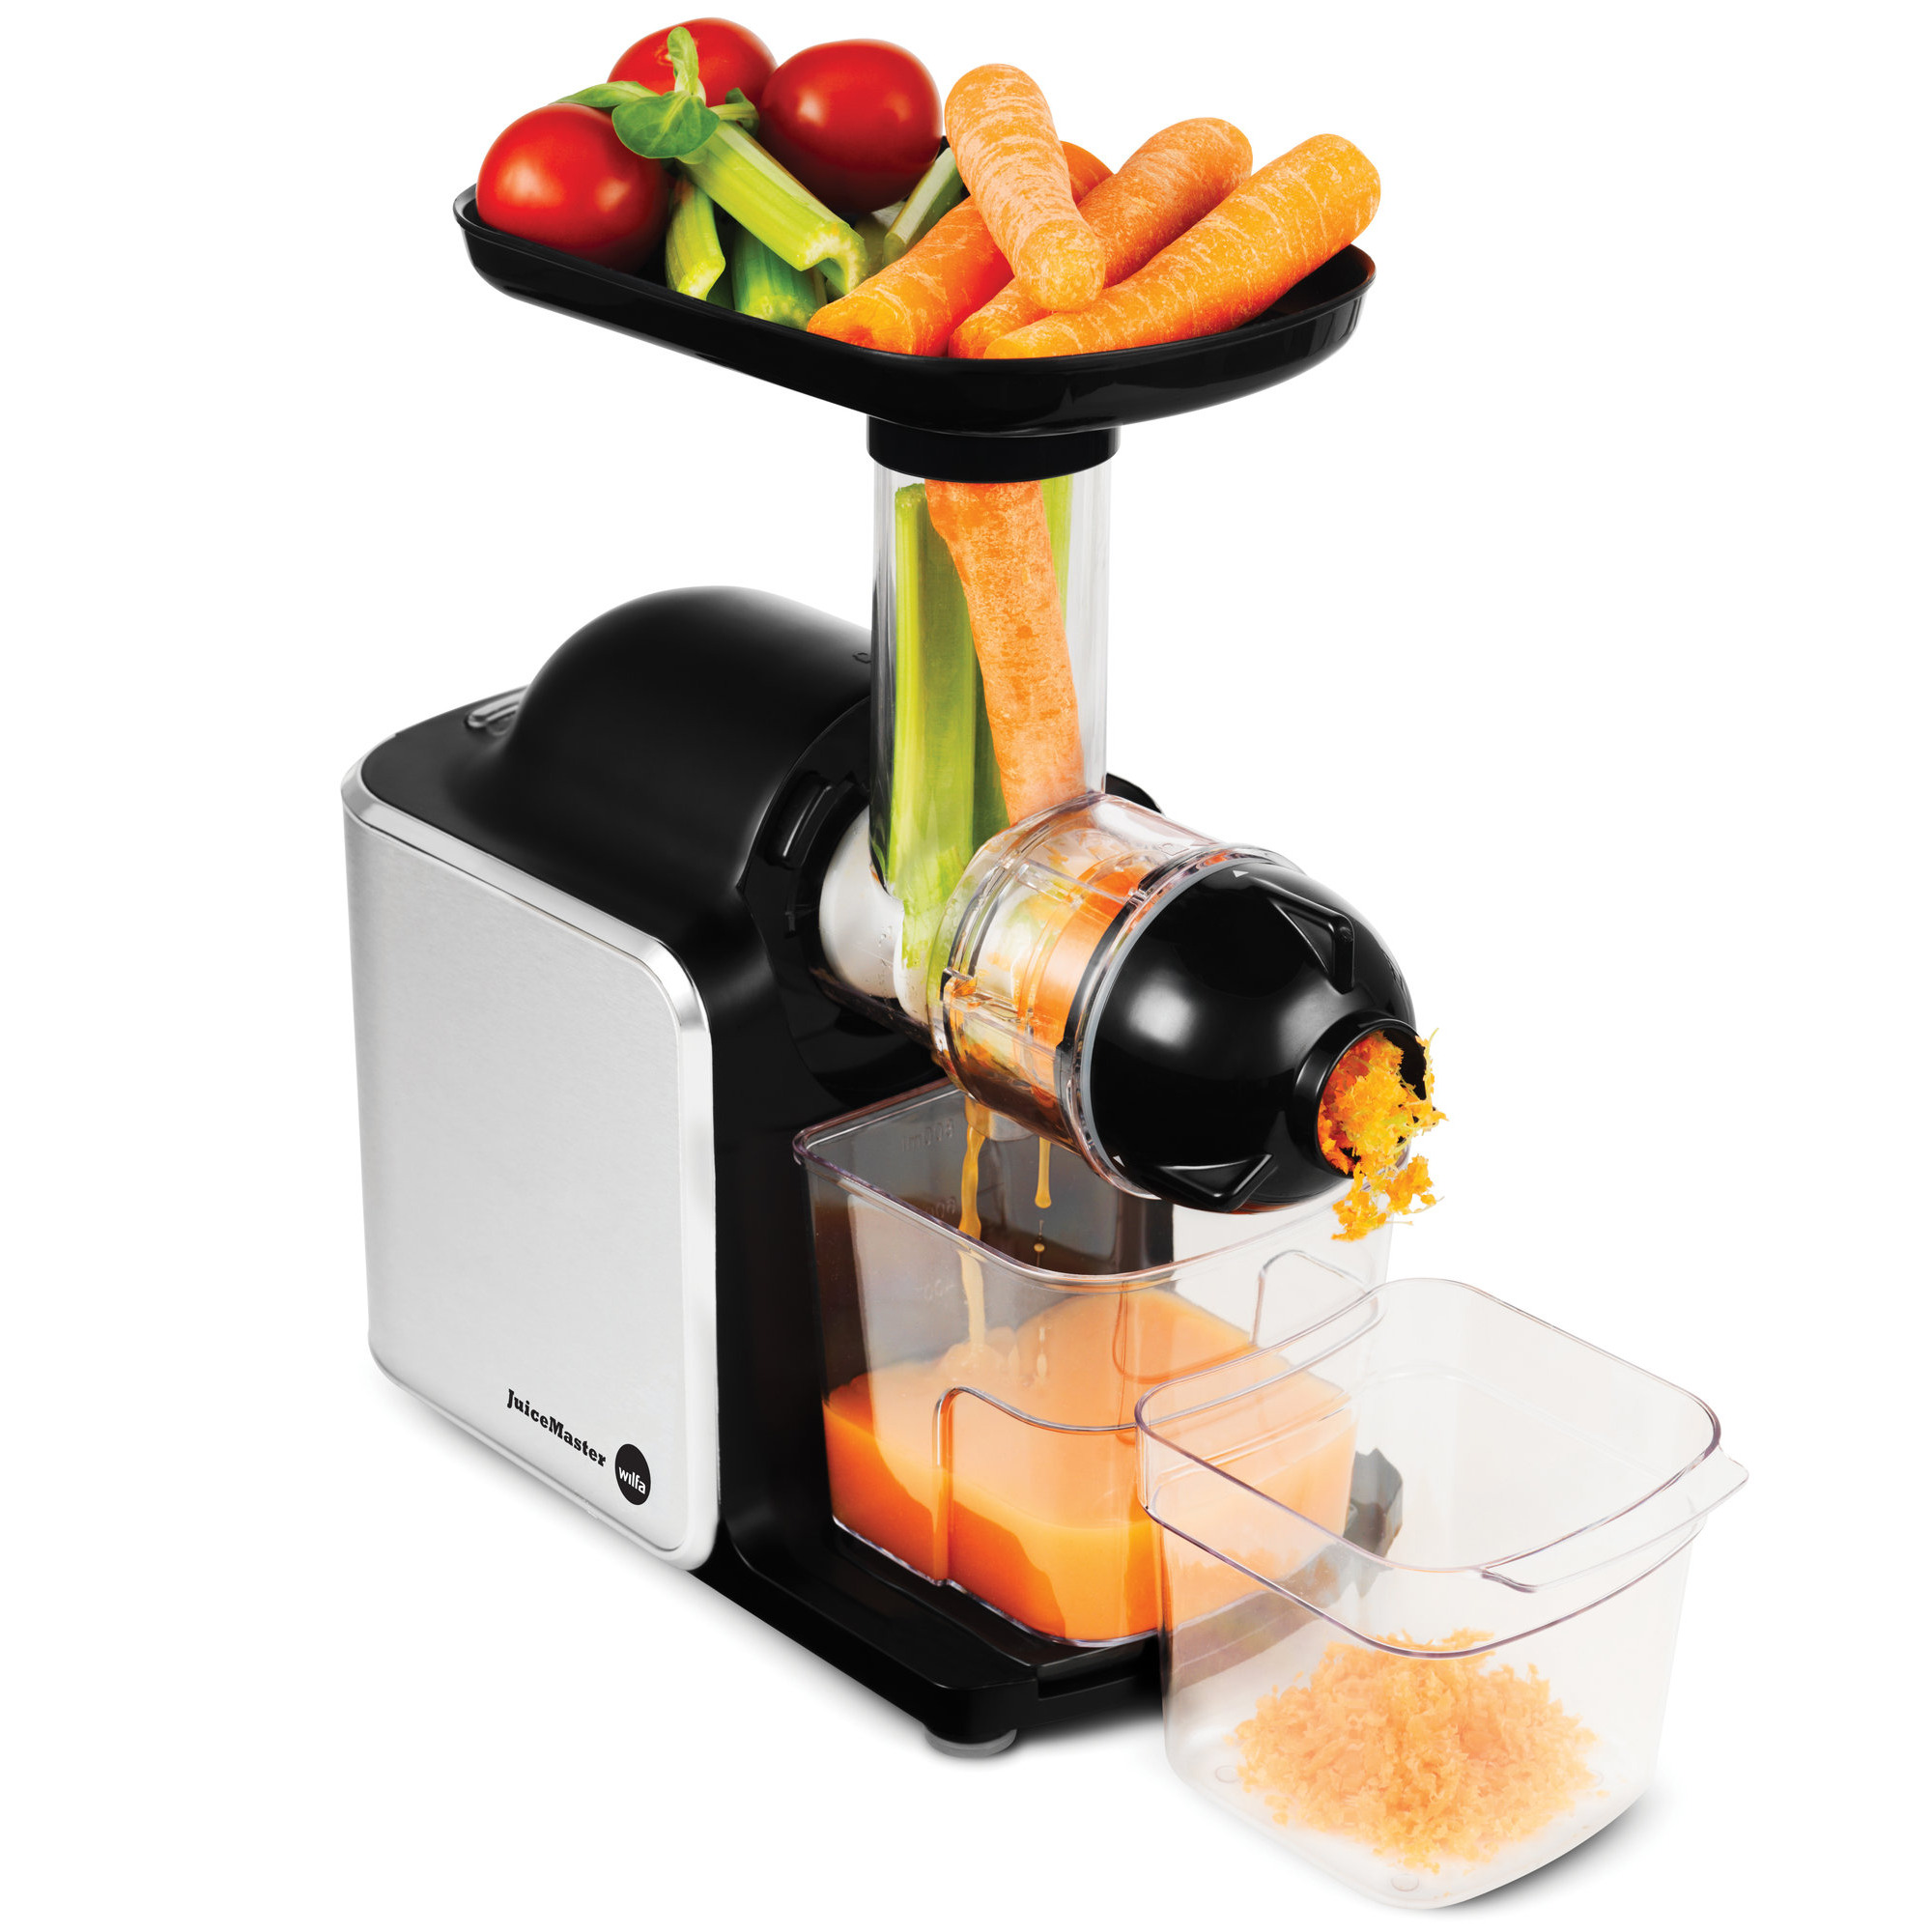 Wilfa Slow Juicer Review : SJ-150A slow juicer fra Wilfa 150 watt (minimalt stromforbrug)